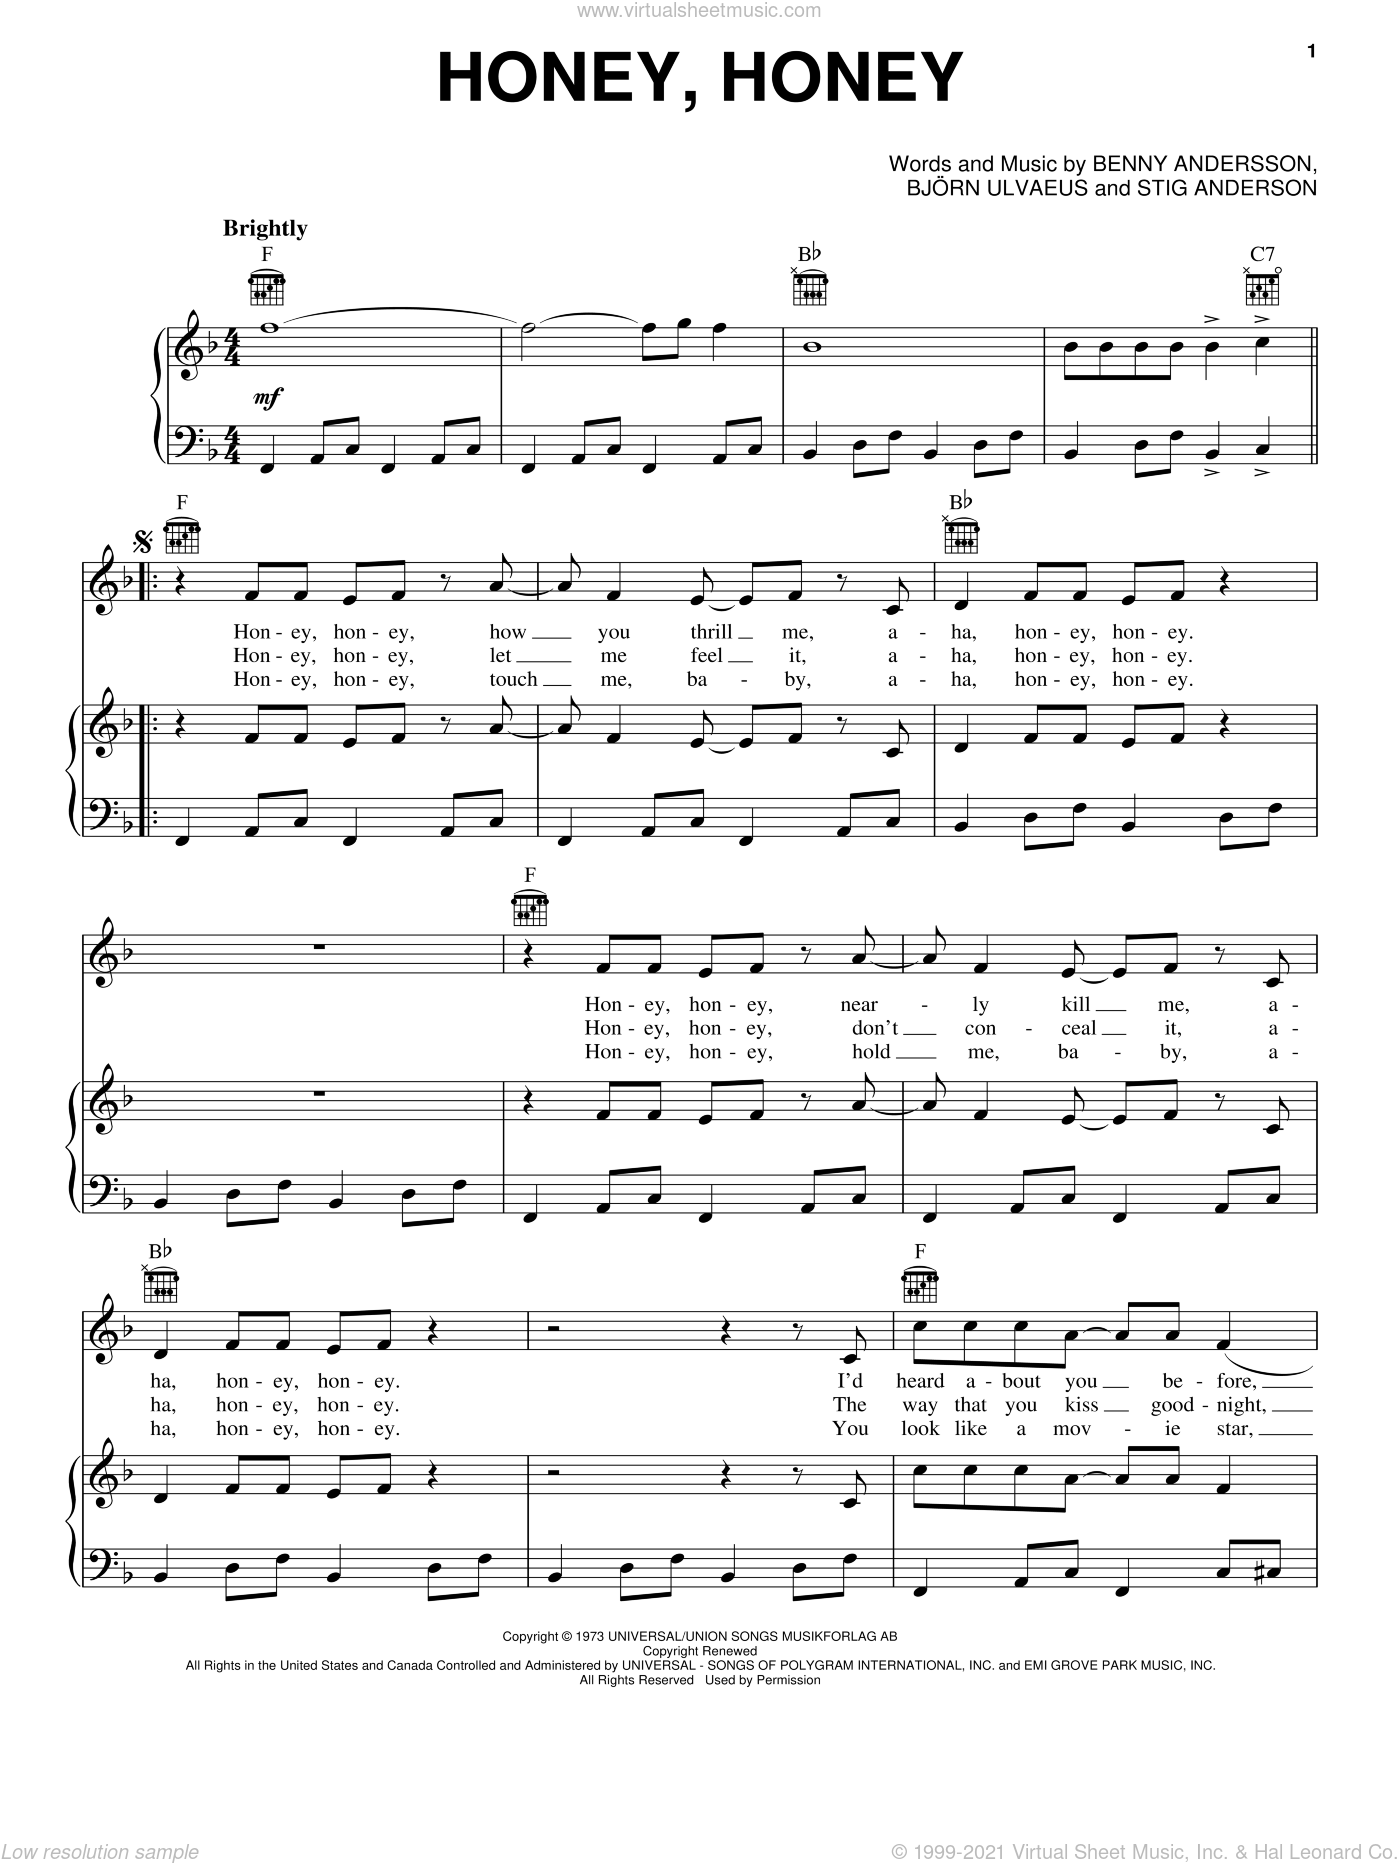 Honey, Honey sheet music for voice, piano or guitar by Stig Anderson